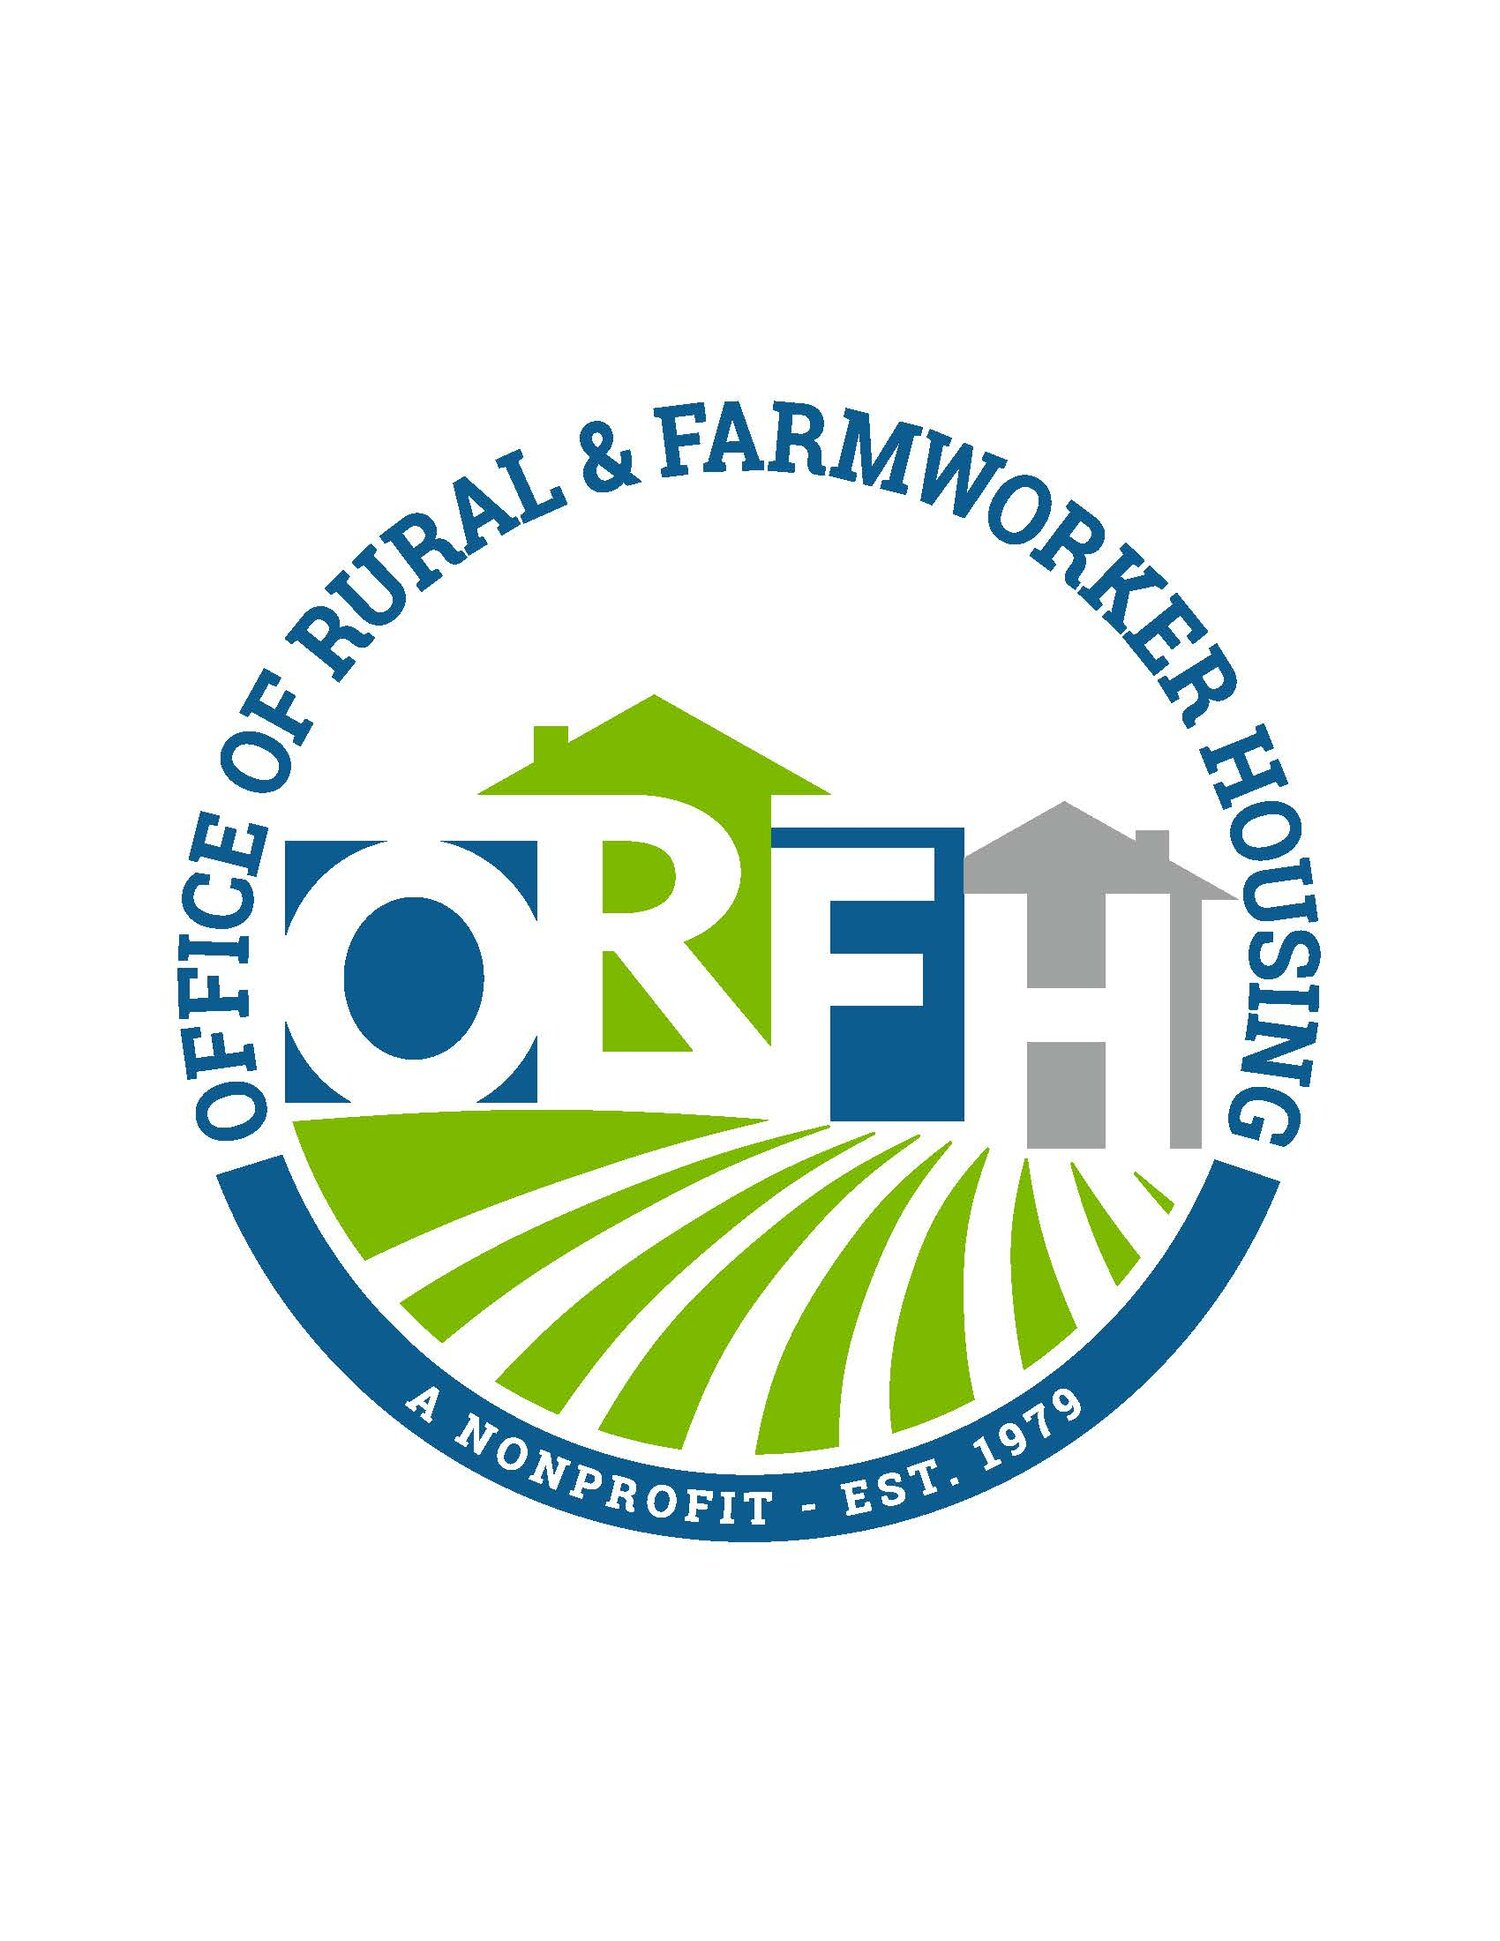 office-of-rural-and-farmworker-housing